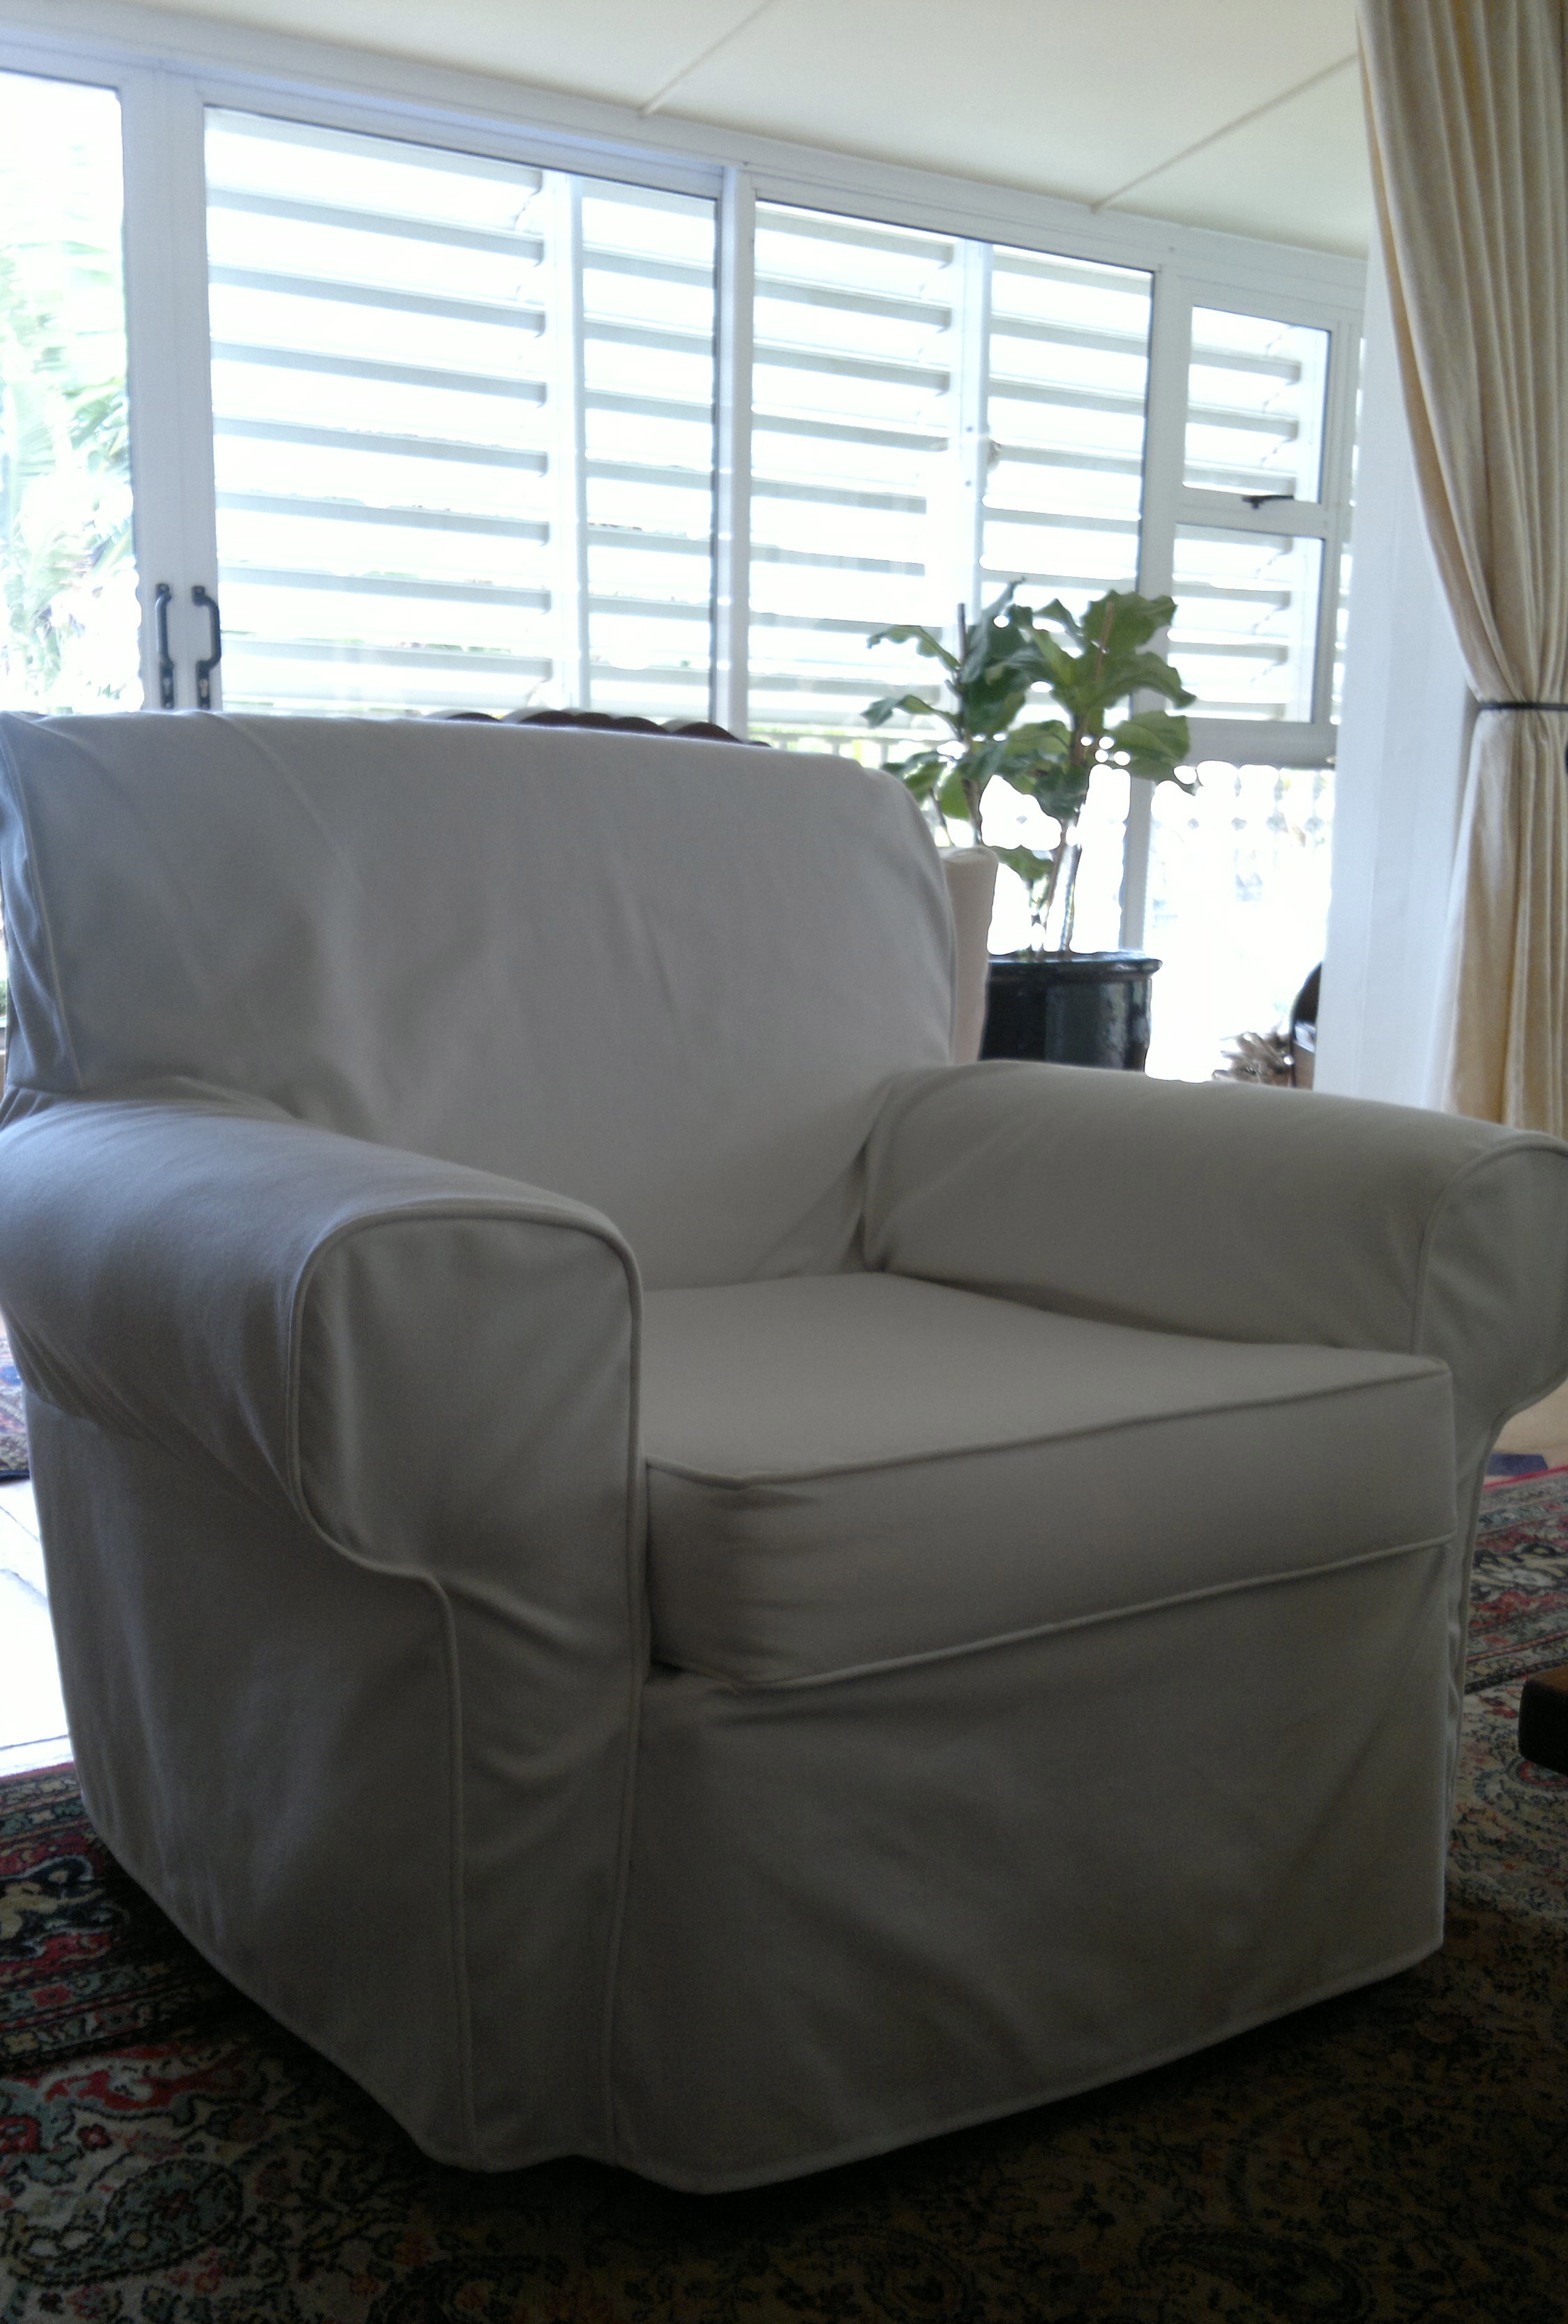 Slipcovers For Dining Room Chairs Fabric Couch Covers Cape